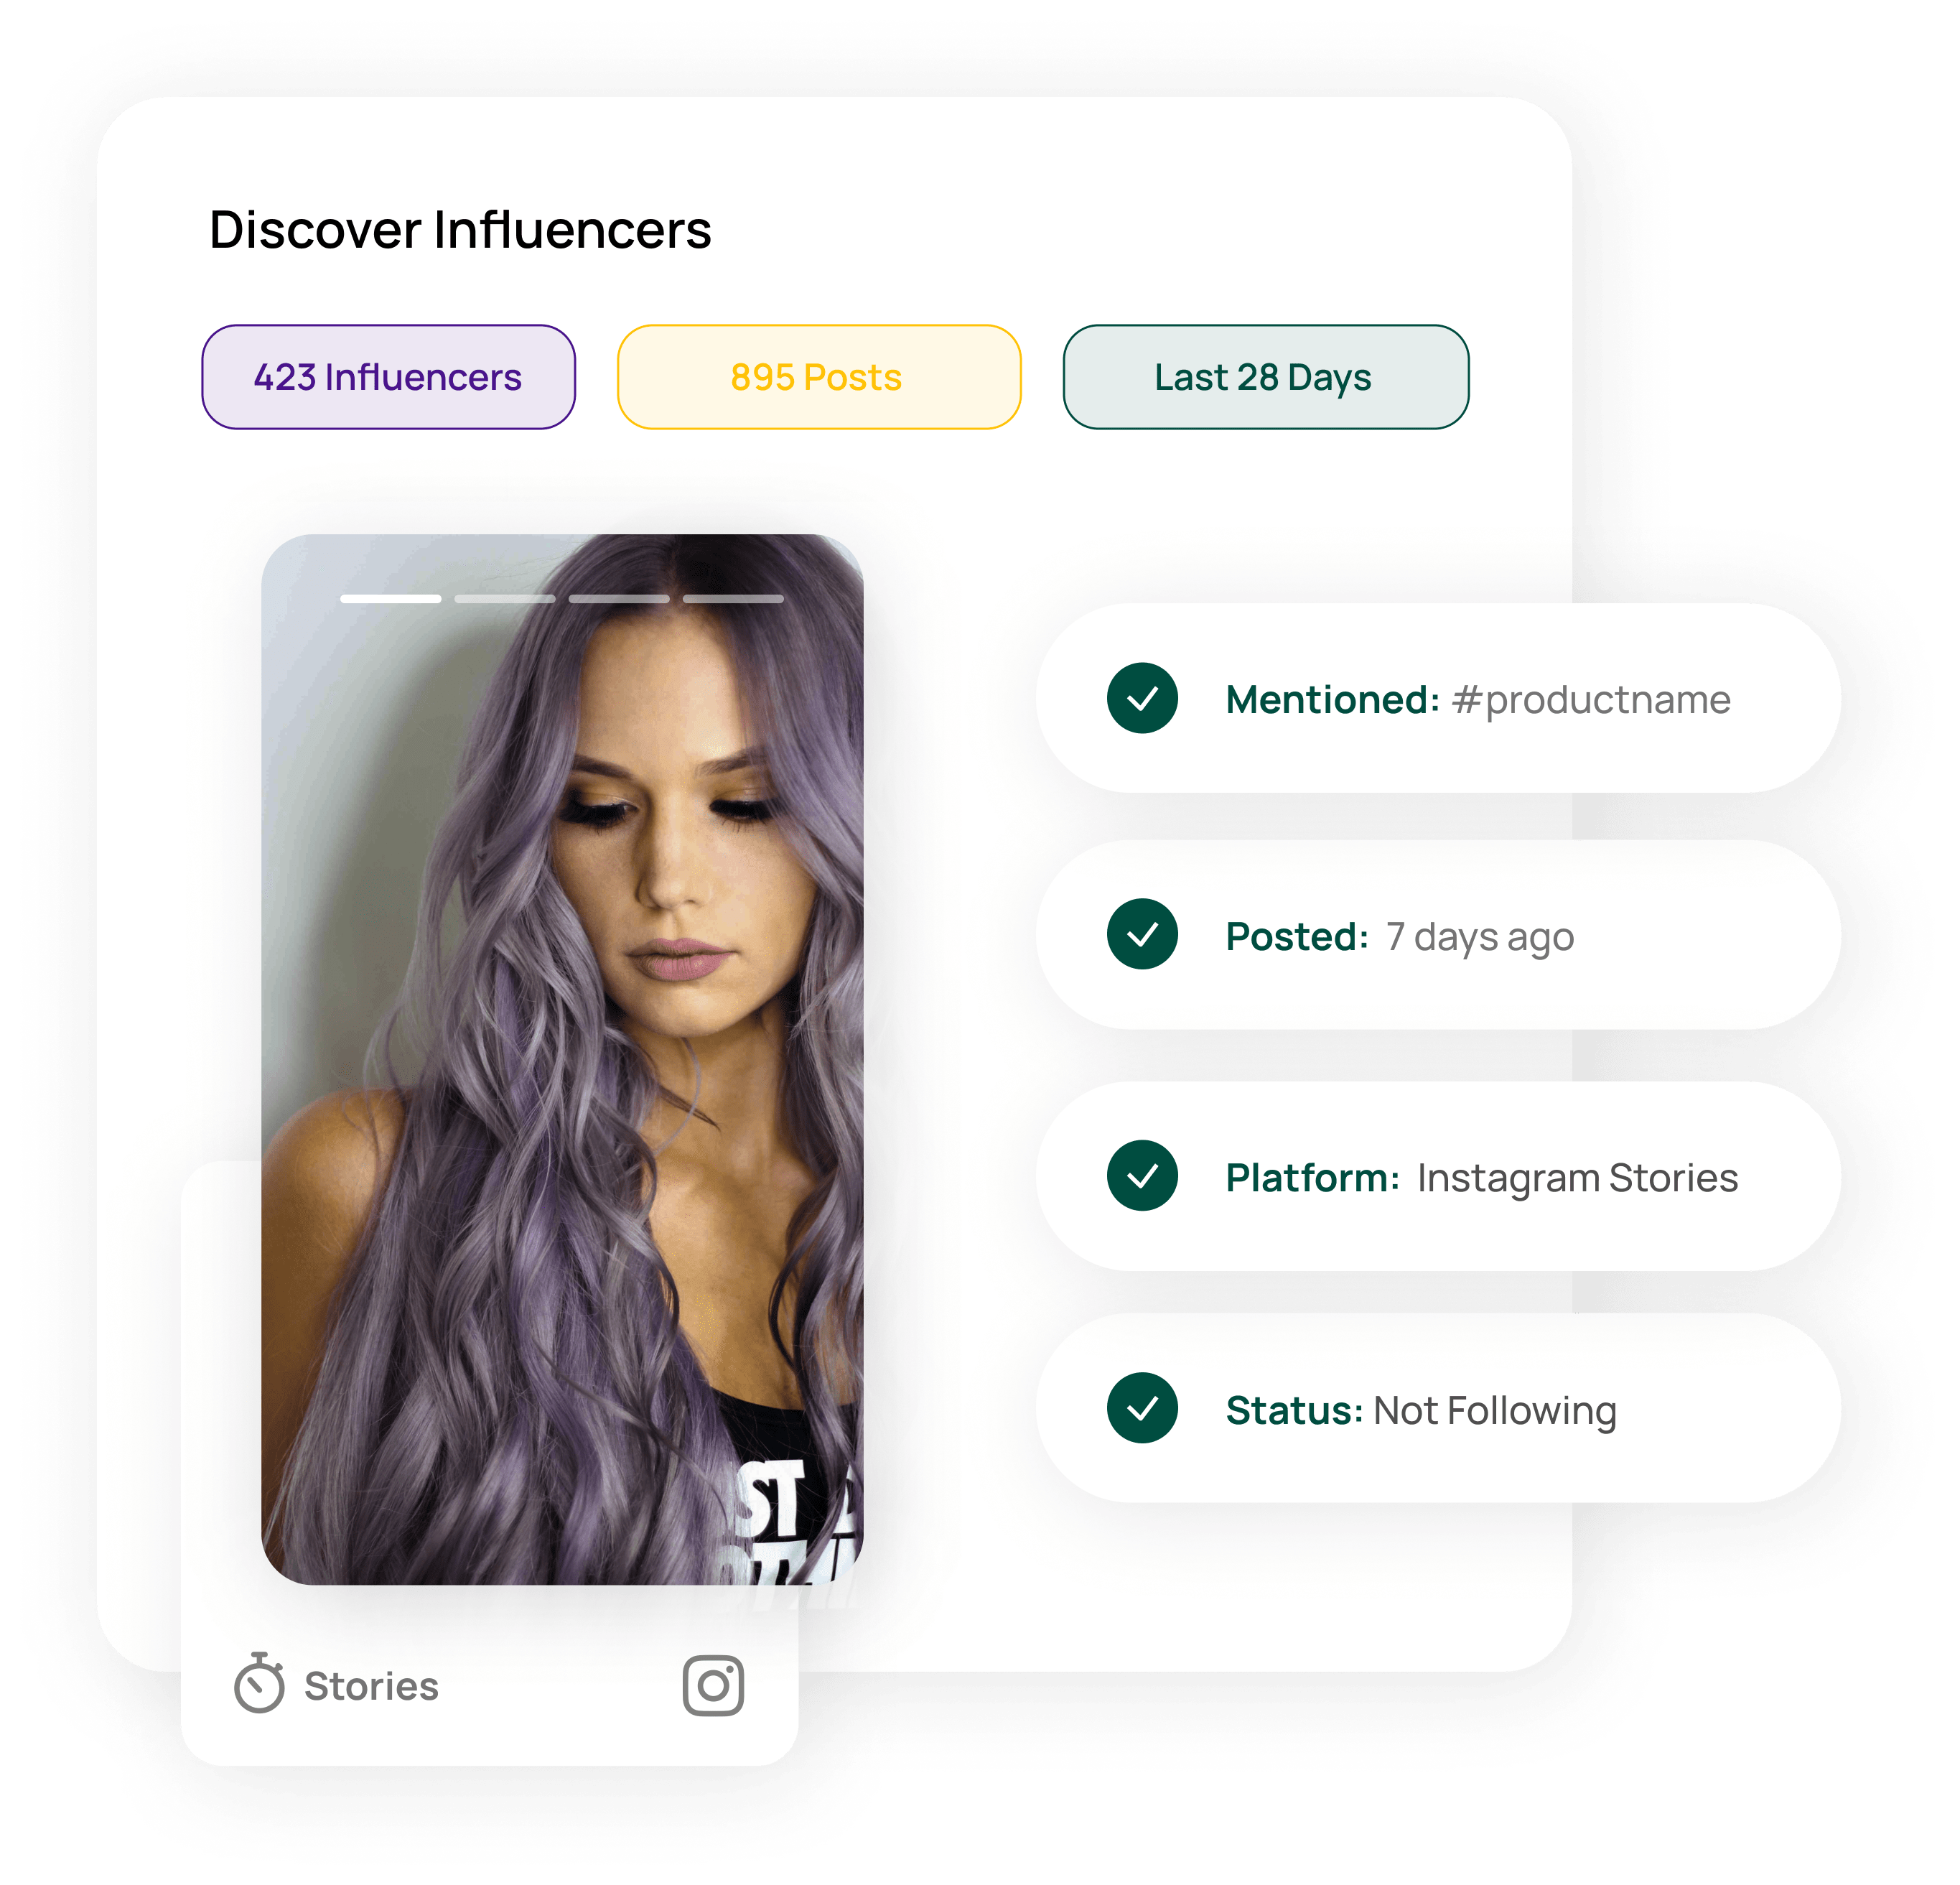 Instagram Story tracking in Influencer Discover tool